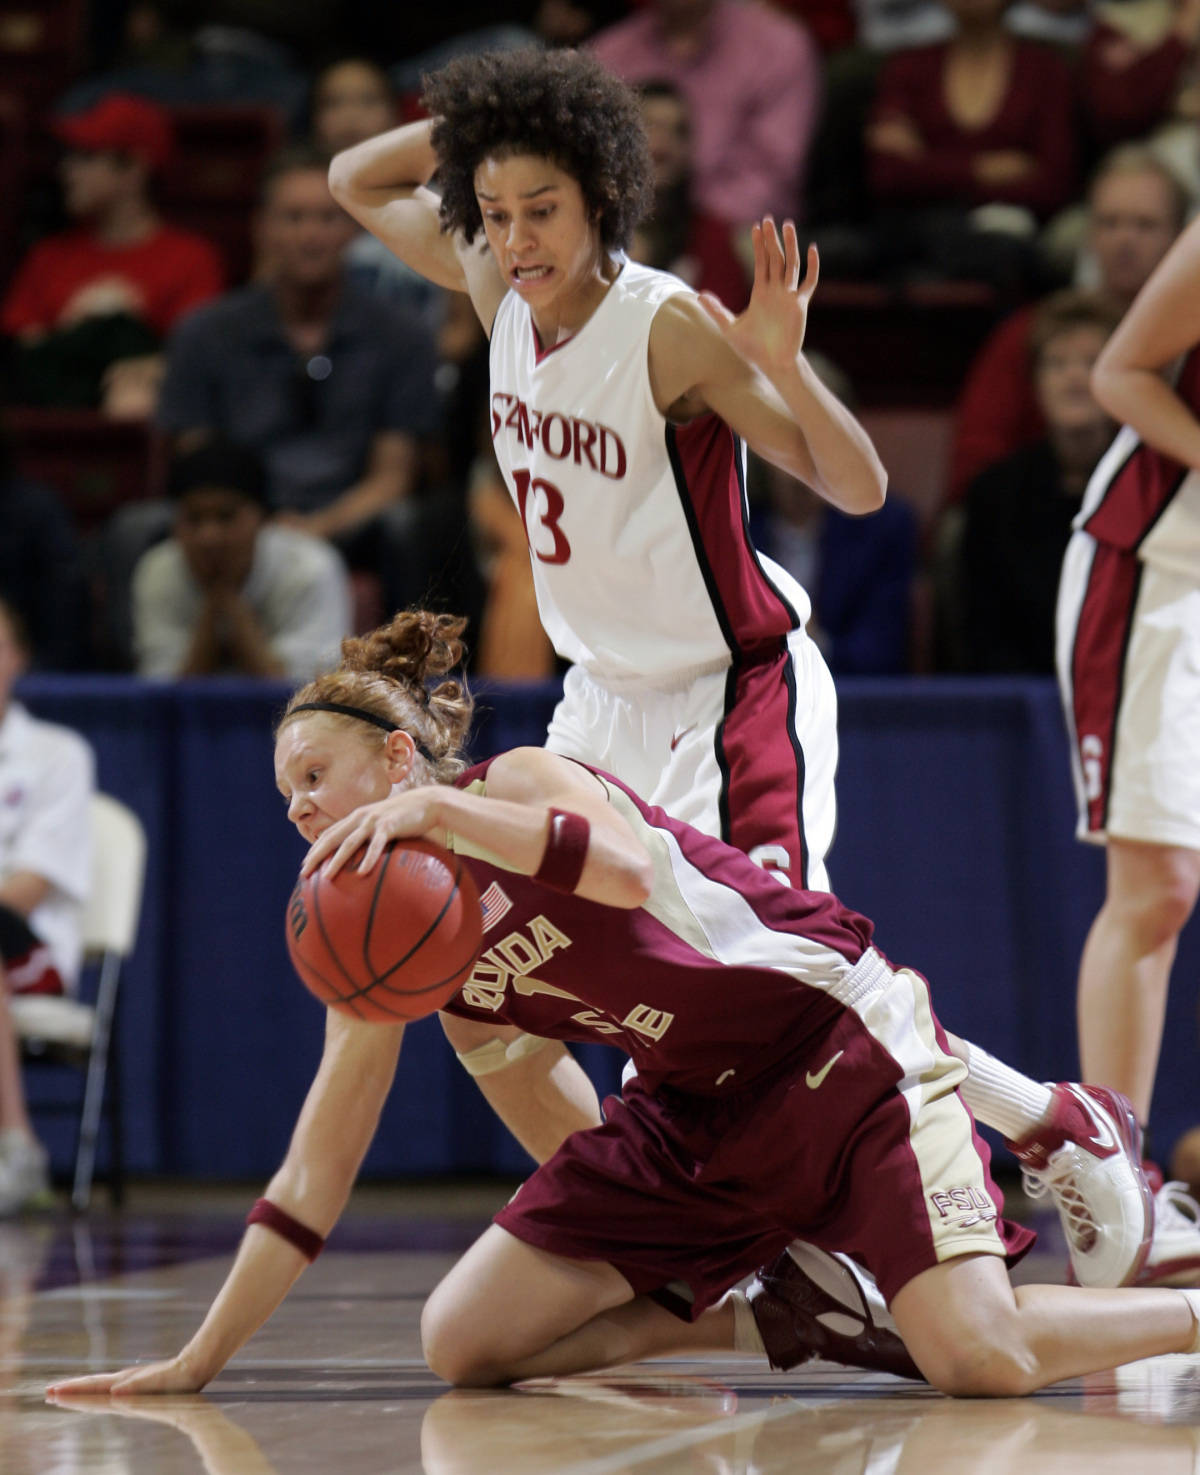 Florida State guard Mara Freshour retains possession of the ball while on her knees in front of Stanford guard Cissy Pierce (13) in the first half of their second-round game in the NCAA women's basketball tournament in Stanford, Calif., Monday, March 19, 2007. (AP Photo/Paul Sakuma)